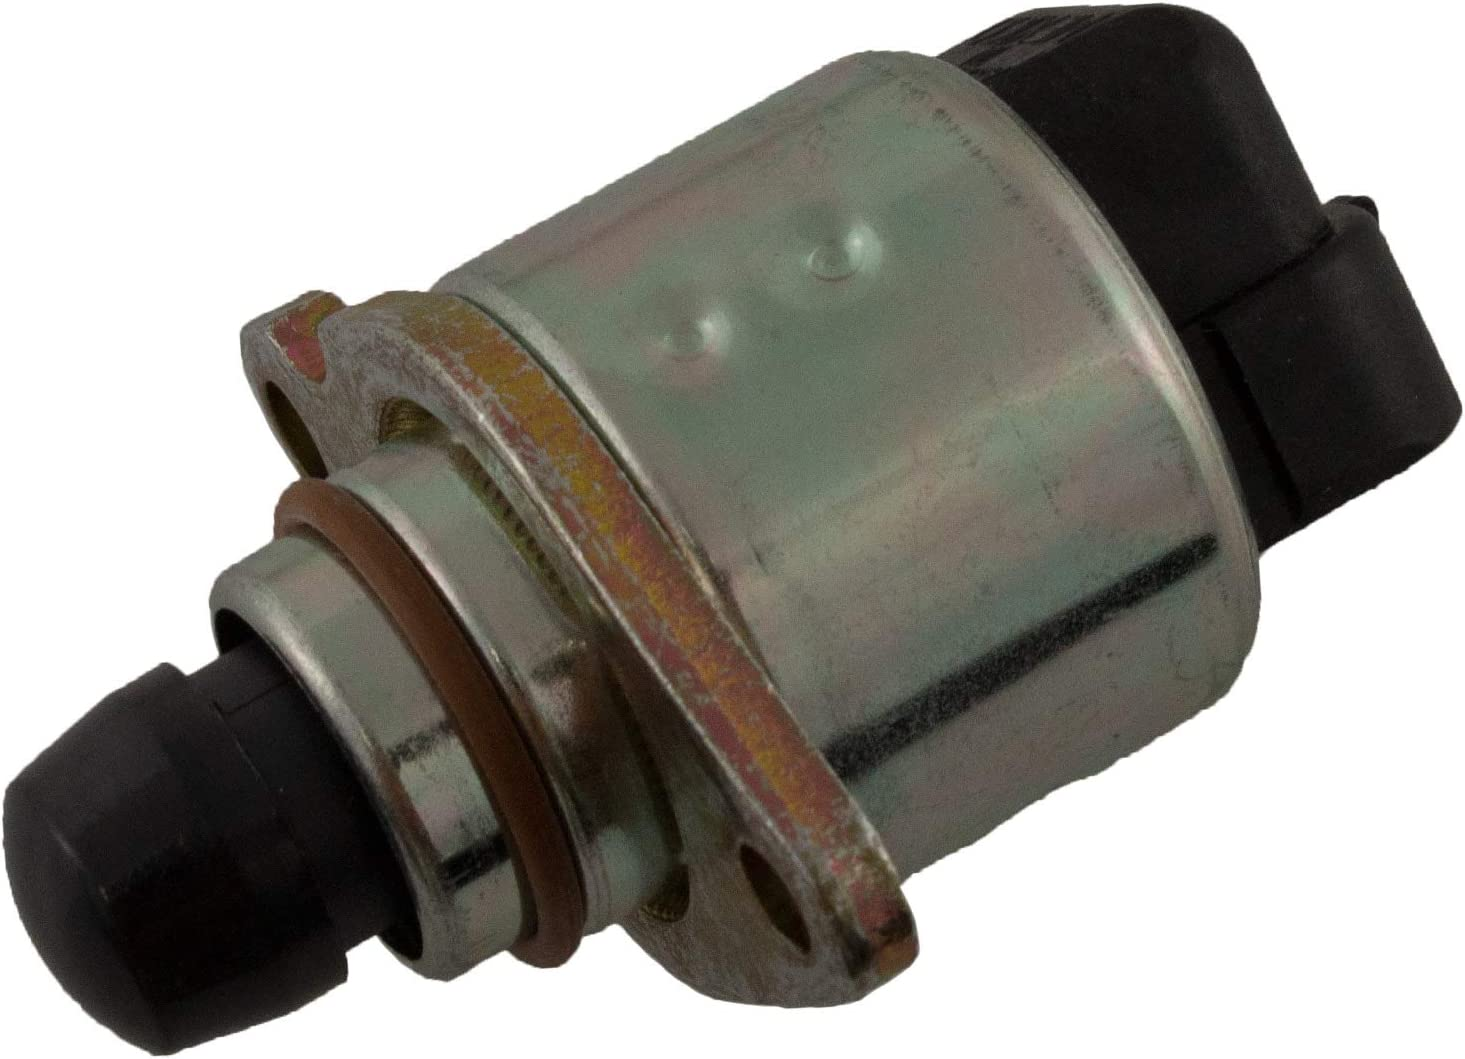 Walker Products 215-1064 Fuel Injection Control Spasm price Air Valve Direct sale of manufacturer Idle